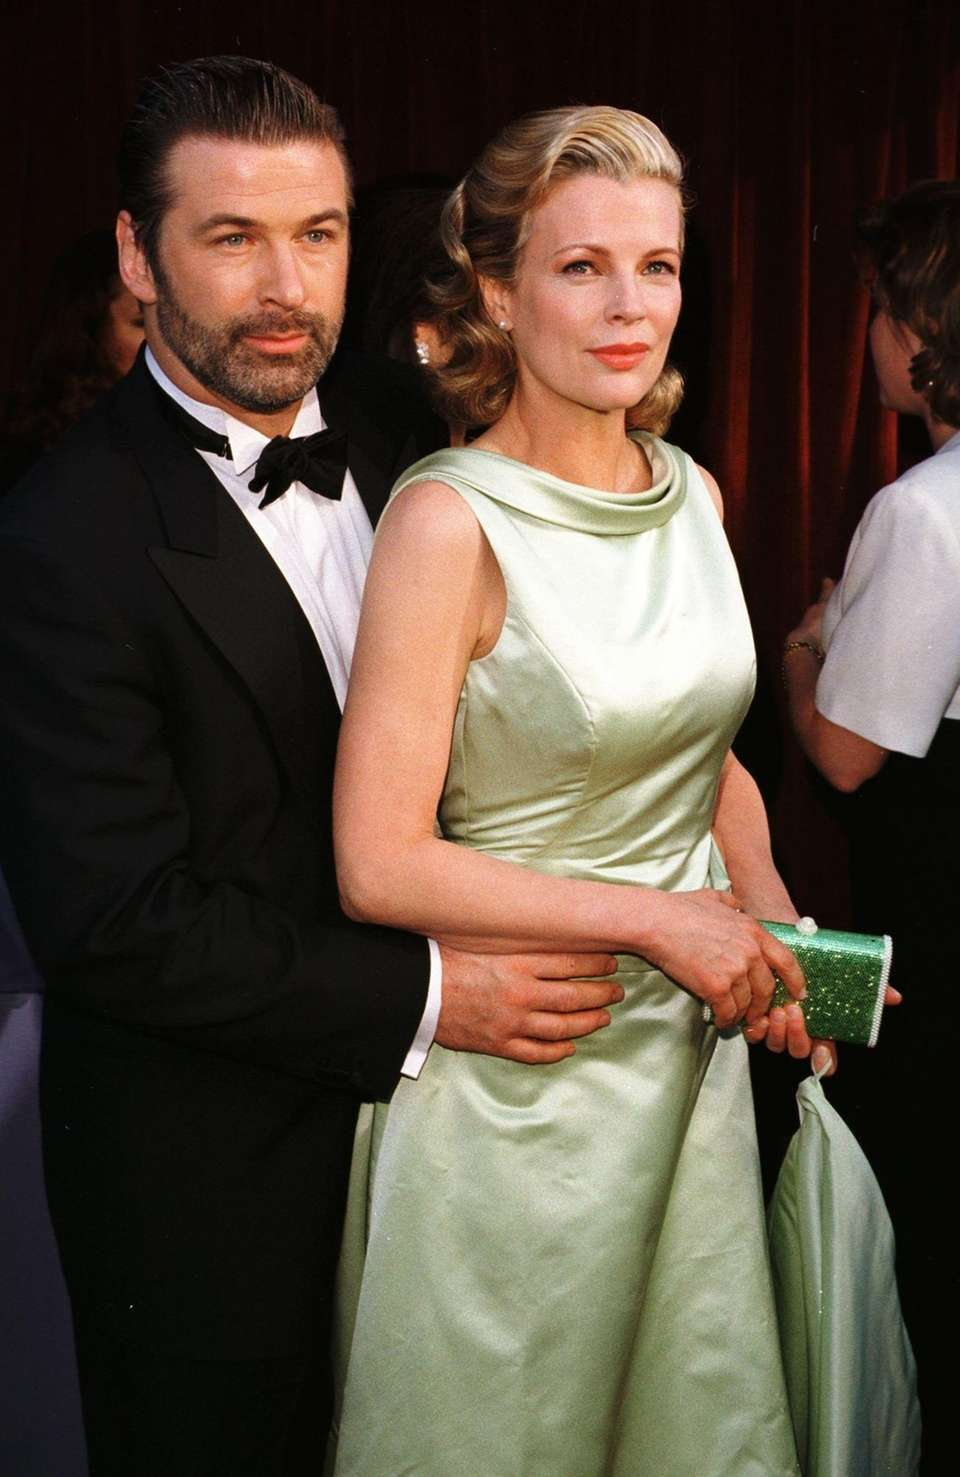 Kim Basinger and her then husband actor Alec